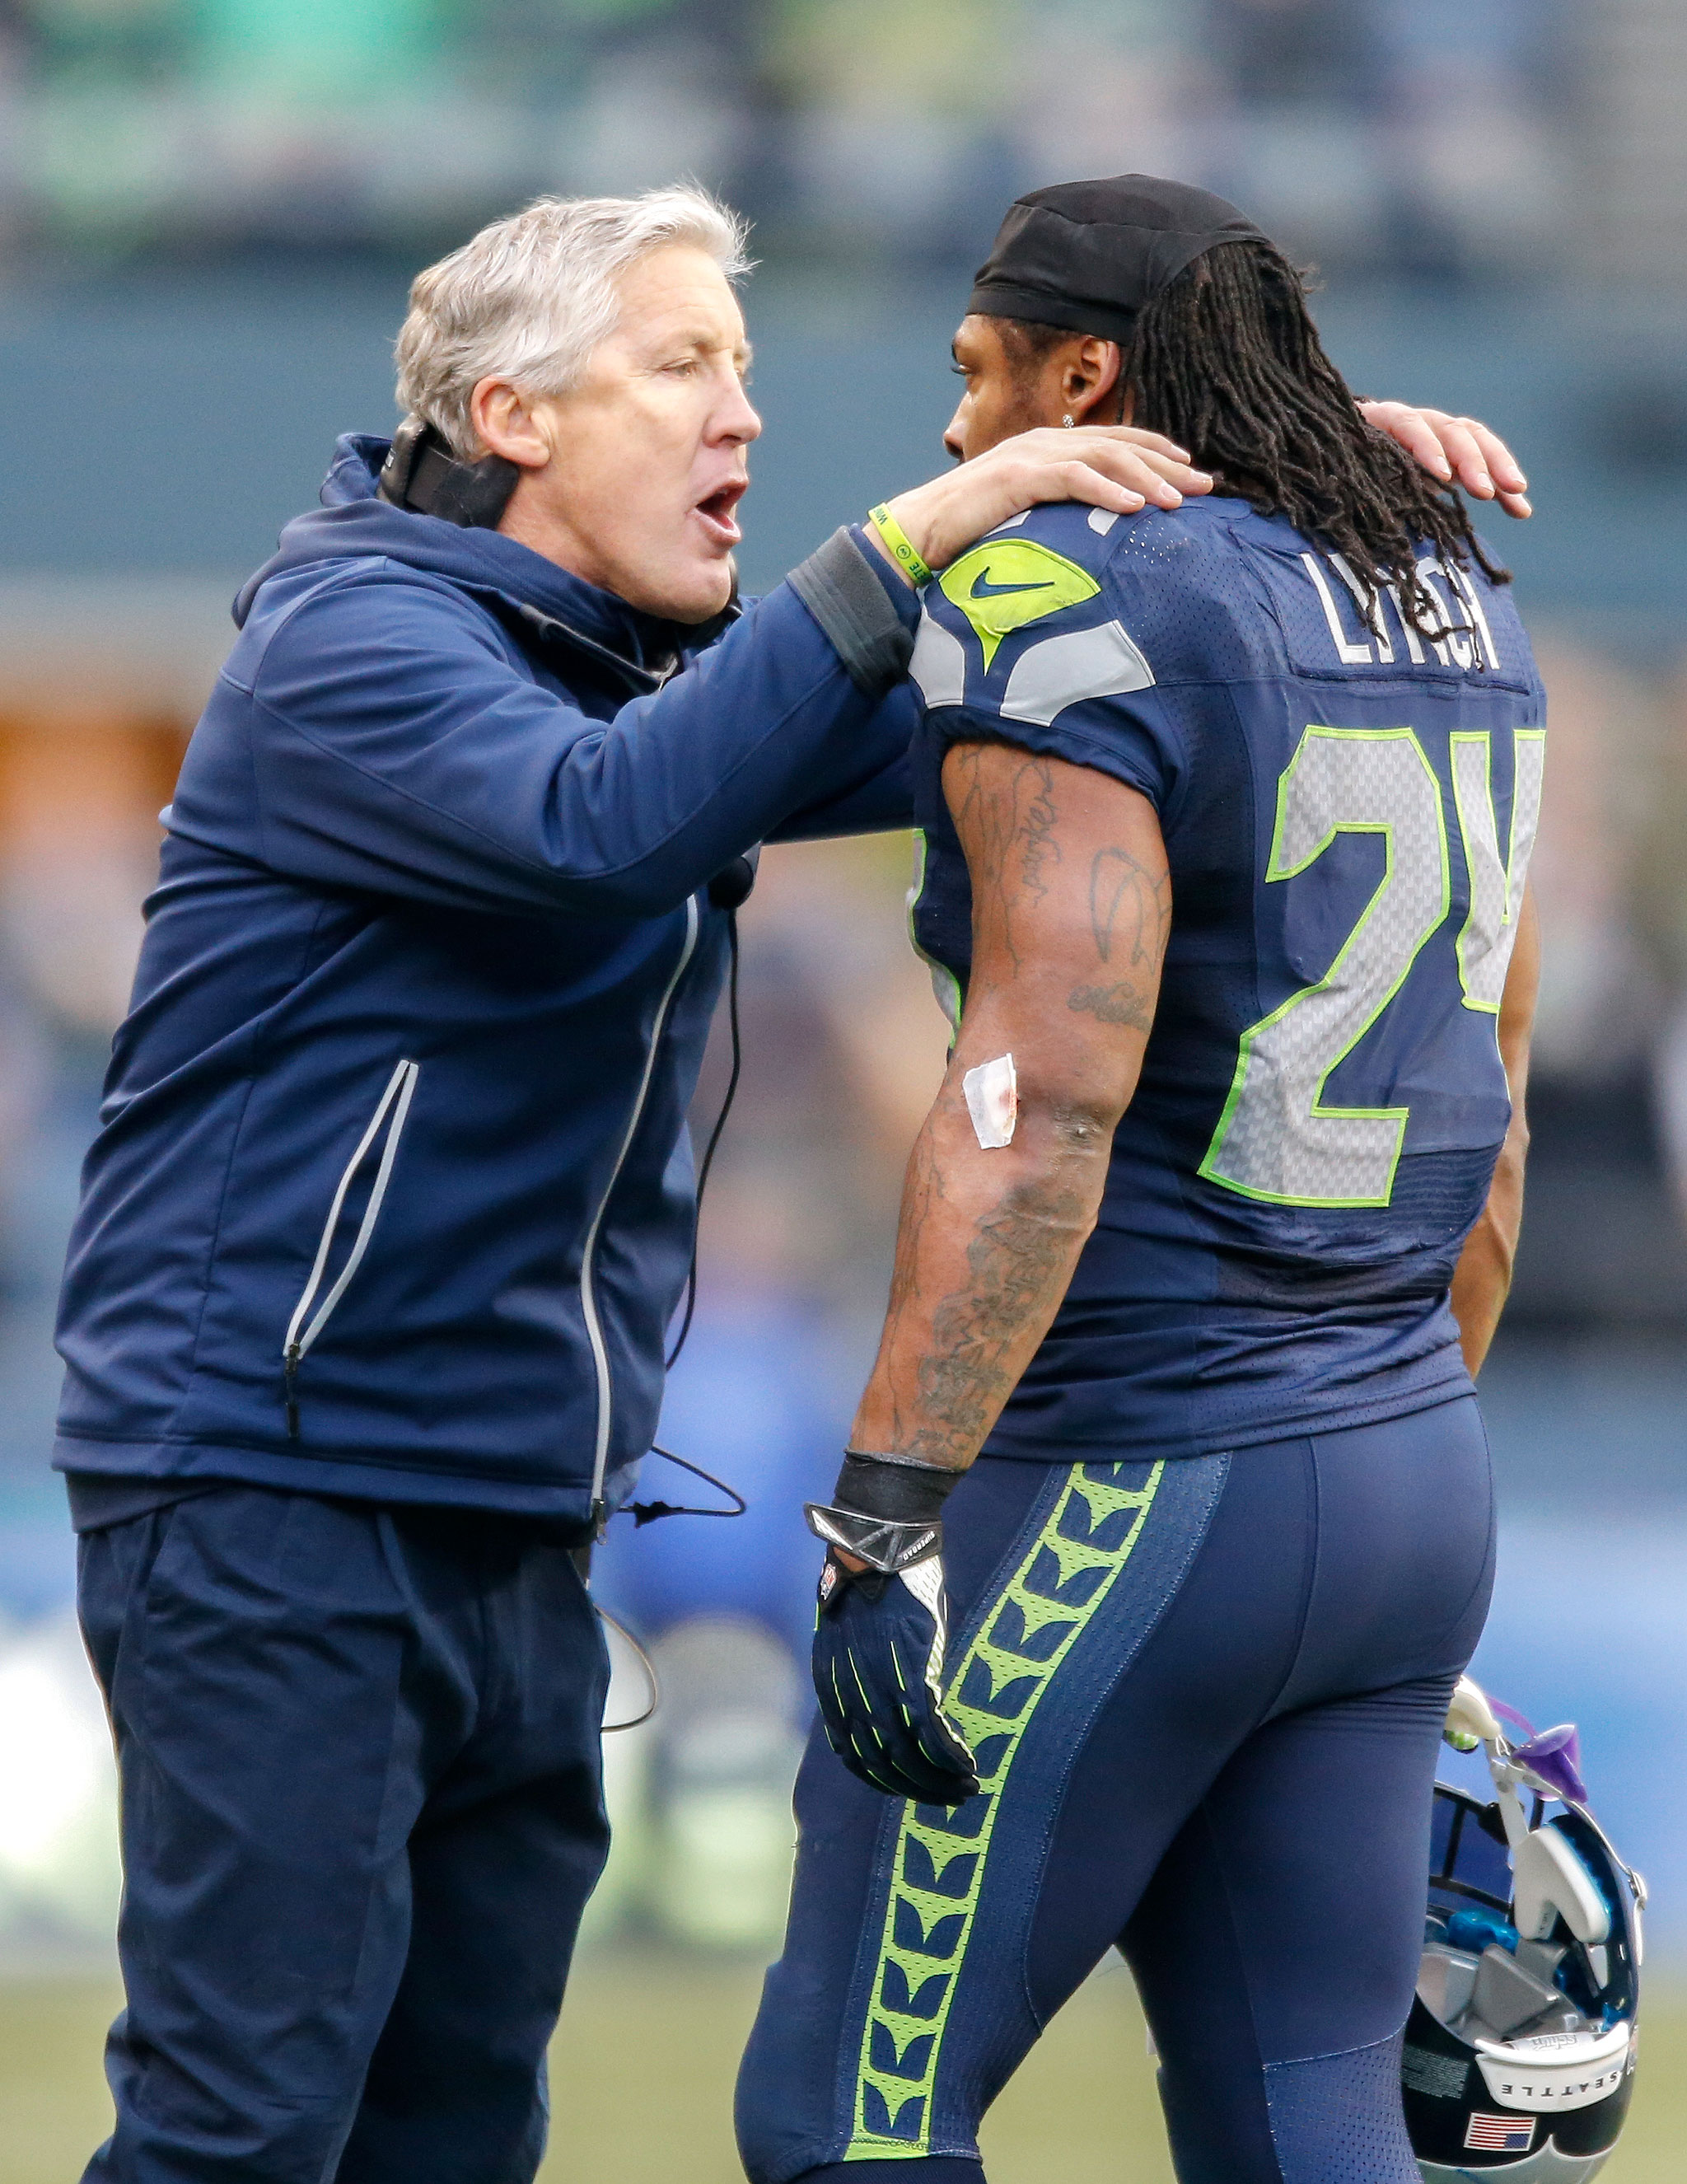 SEATTLE, WA - DECEMBER 29:  Head coach Pete Carroll of the Seattle Seahawks talks with running back Marshawn Lynch #24 during the game against the St. Louis Rams at CenturyLink Field on December 29, 2013 in Seattle, Washington.